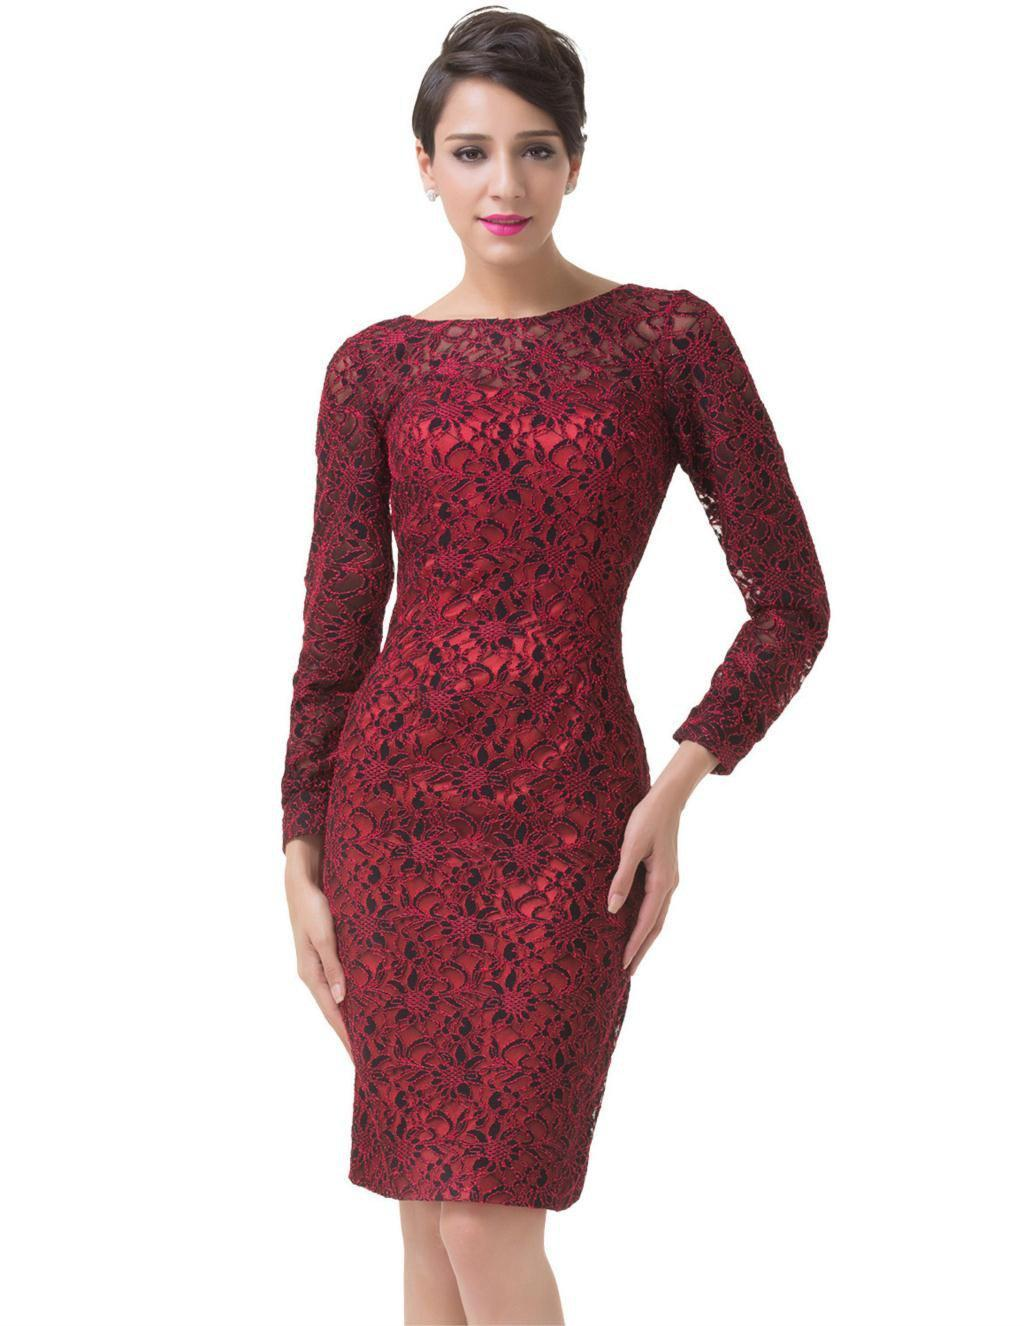 Grace Karin Long Sleeve Red Evening Dress Elegant Women Lace Mother Of The Bride Dresses Wedding Party Dress Formal Gowns 6278-Dress-SheSimplyShops